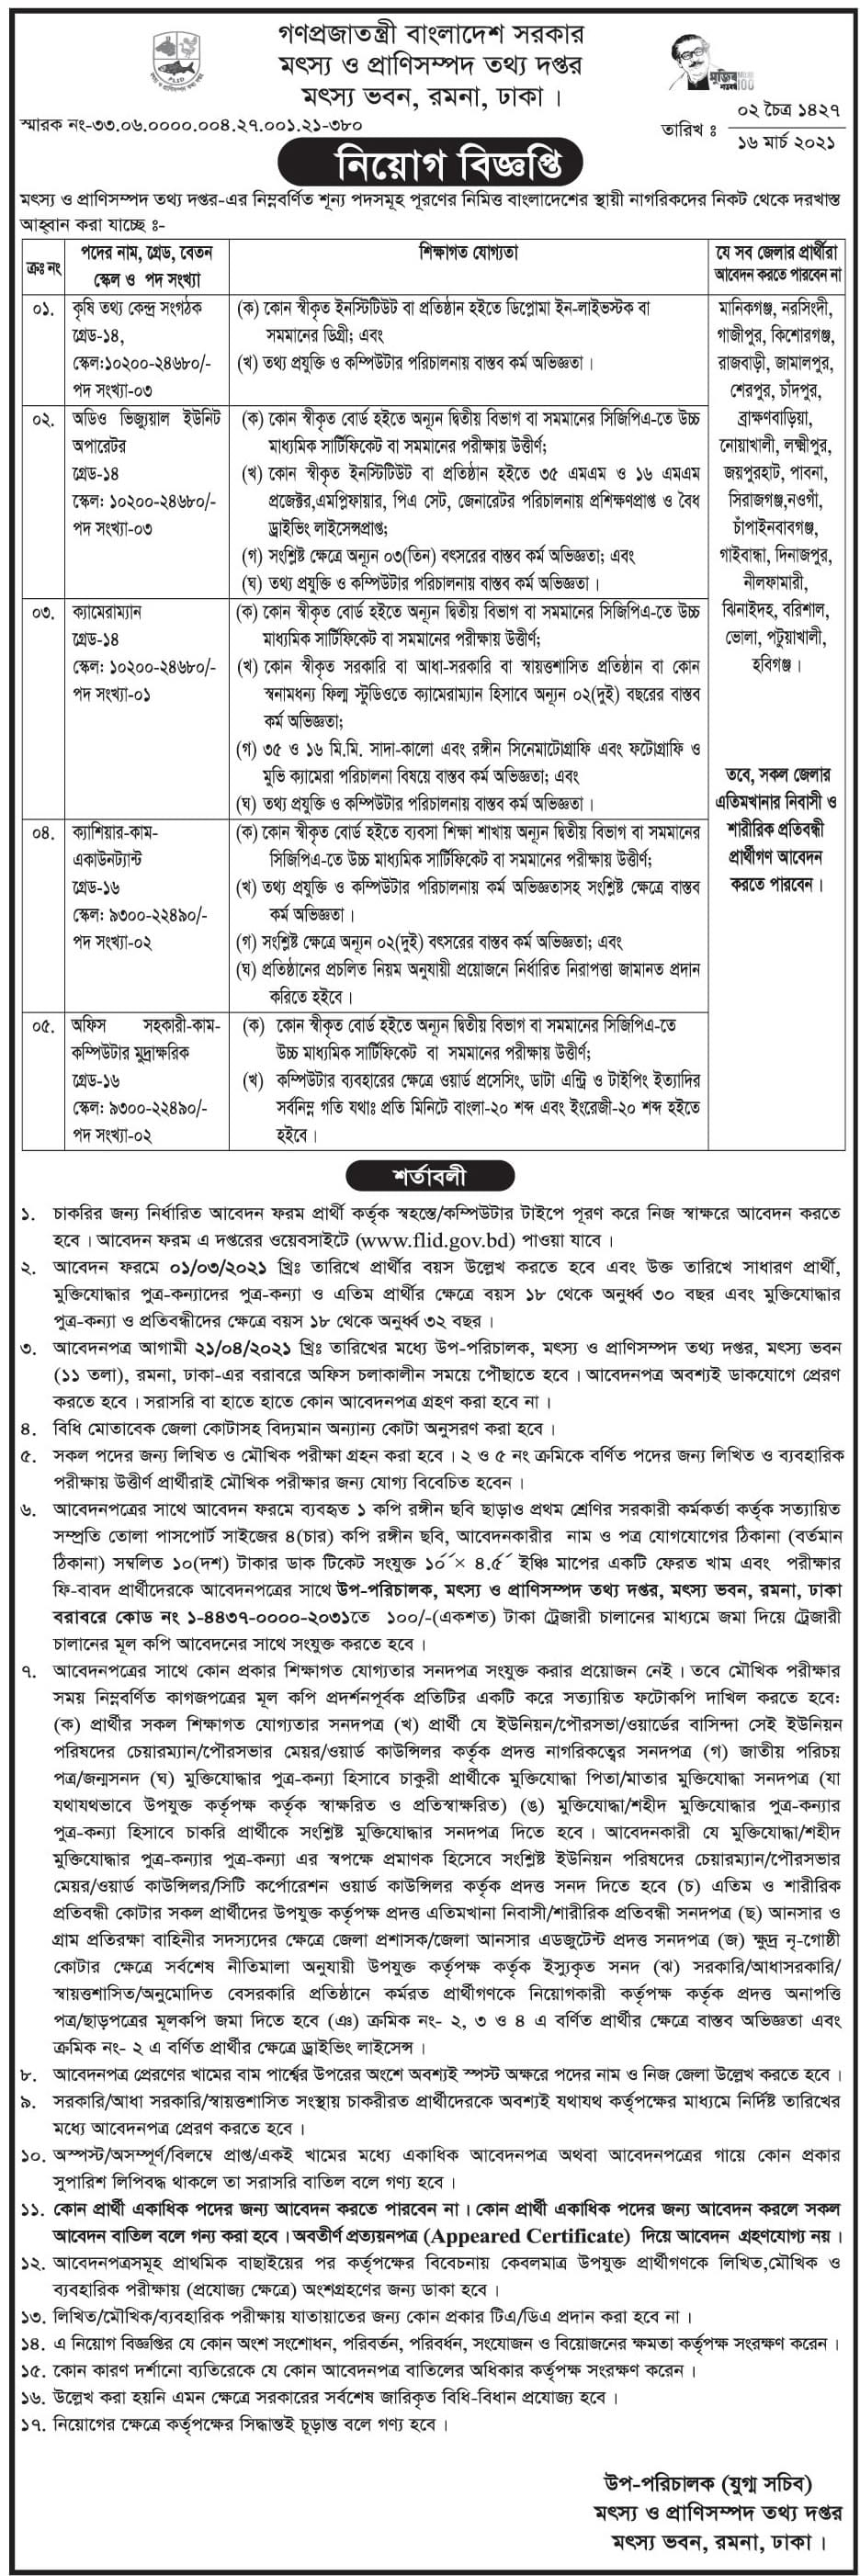 Fisheries and Livestock Information Department FLID Job Circular